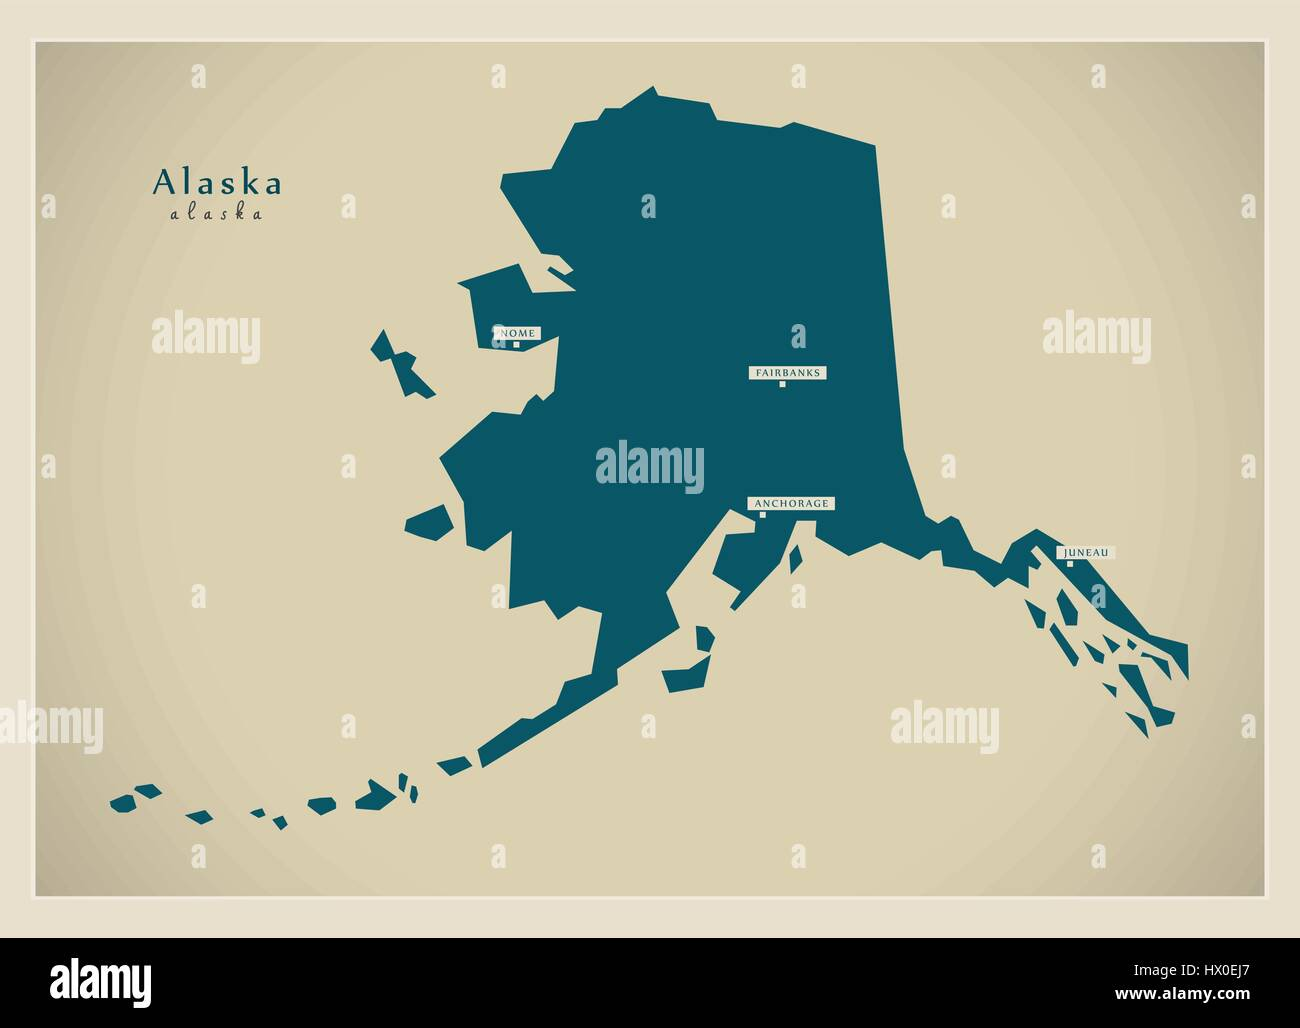 Modern Map Alaska USA Stock Vector Art Illustration Vector - Alaska usa map